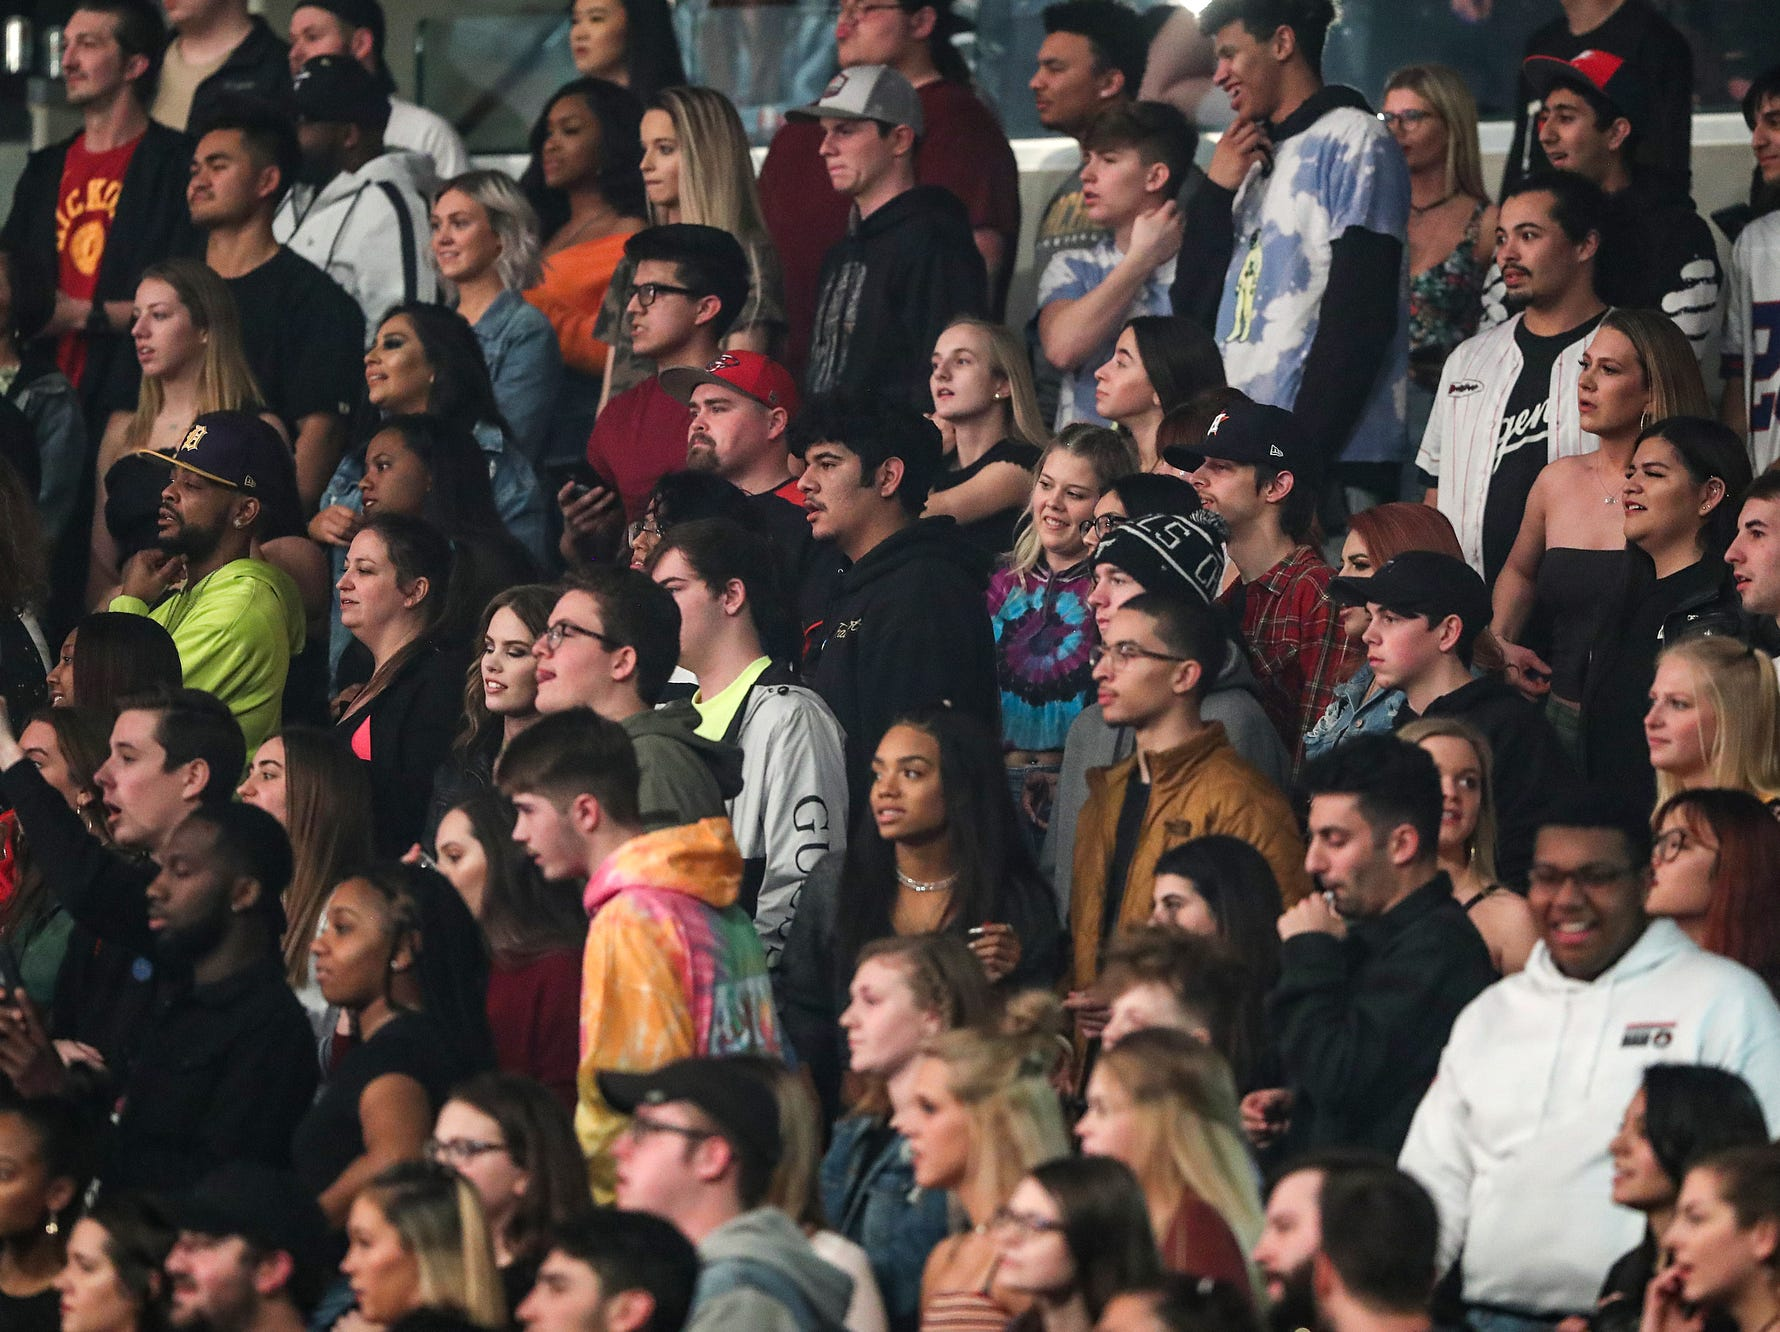 Fans listen from the lower level seating as Travis Scott performs on his Astroworld Tour at Banker's Life Fieldhouse in Indianapolis on Wednesday, Feb. 20, 2018.